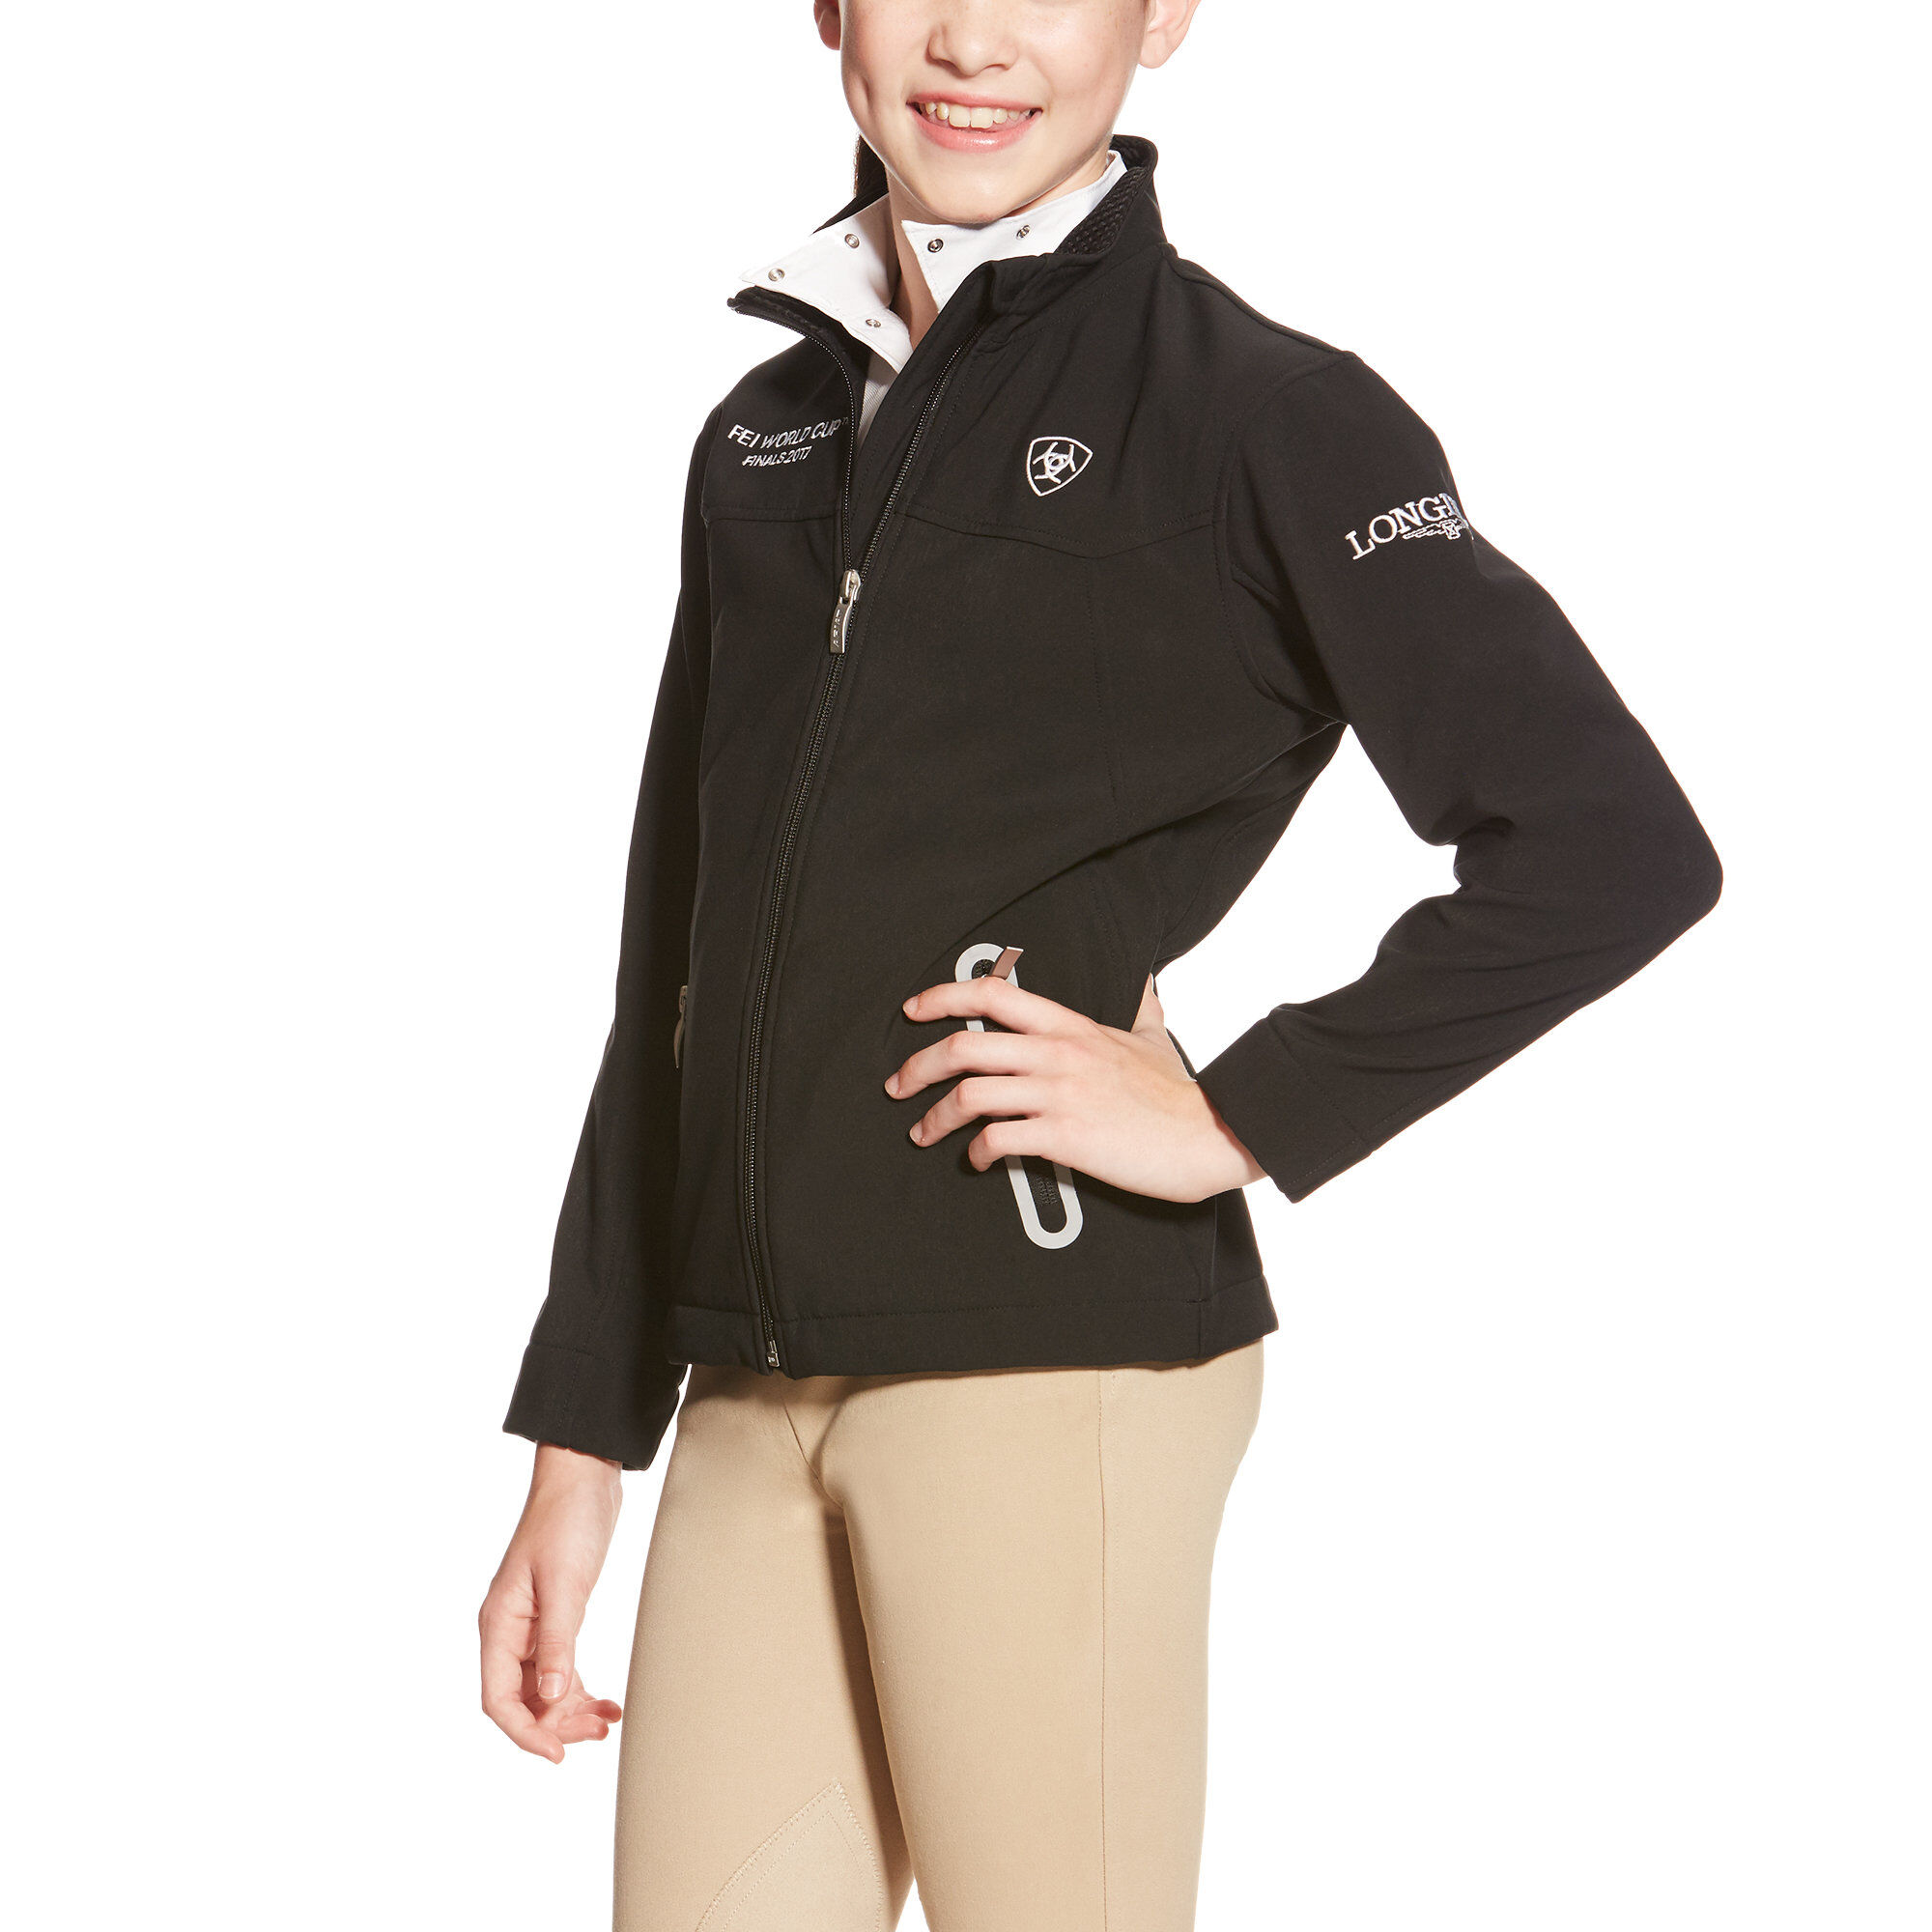 FEI World Cup Team Softshell JacketLogo Jacket